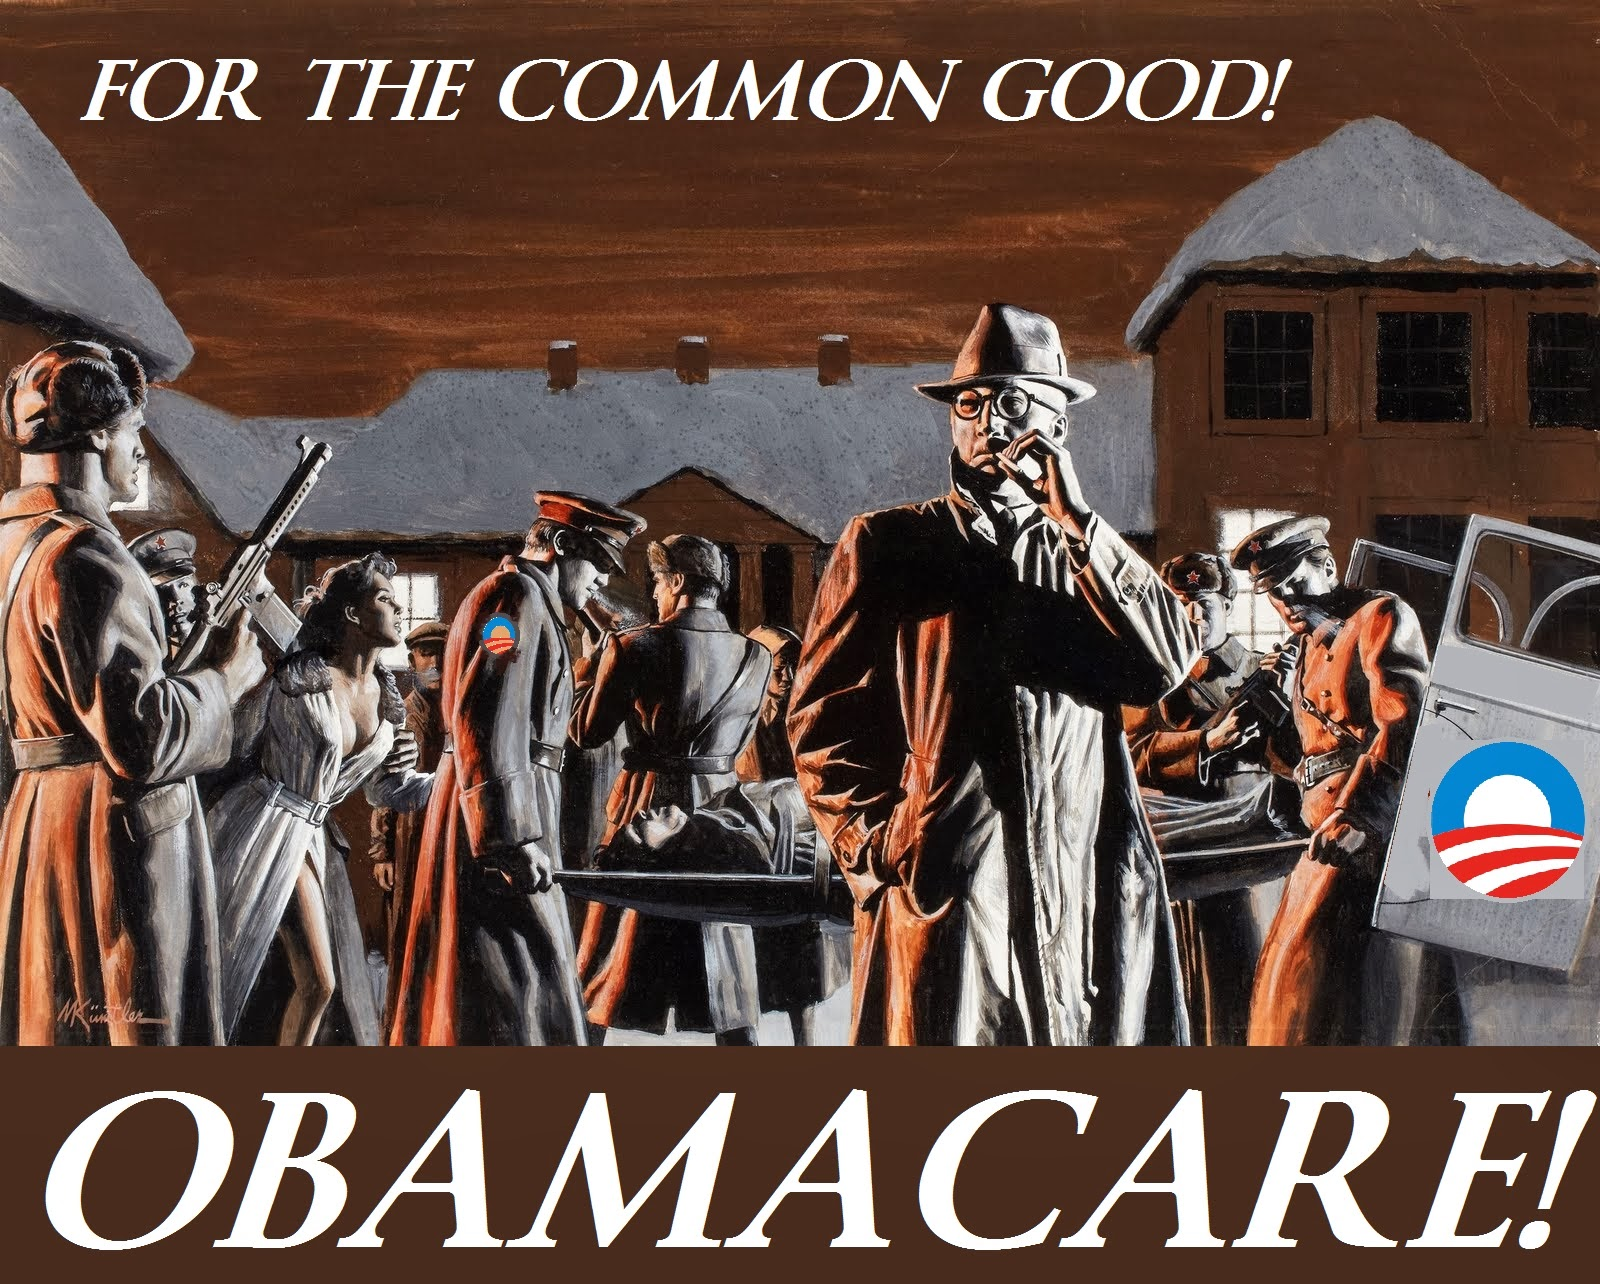 OBAMACARE IS FOR THE COMMON GOOD